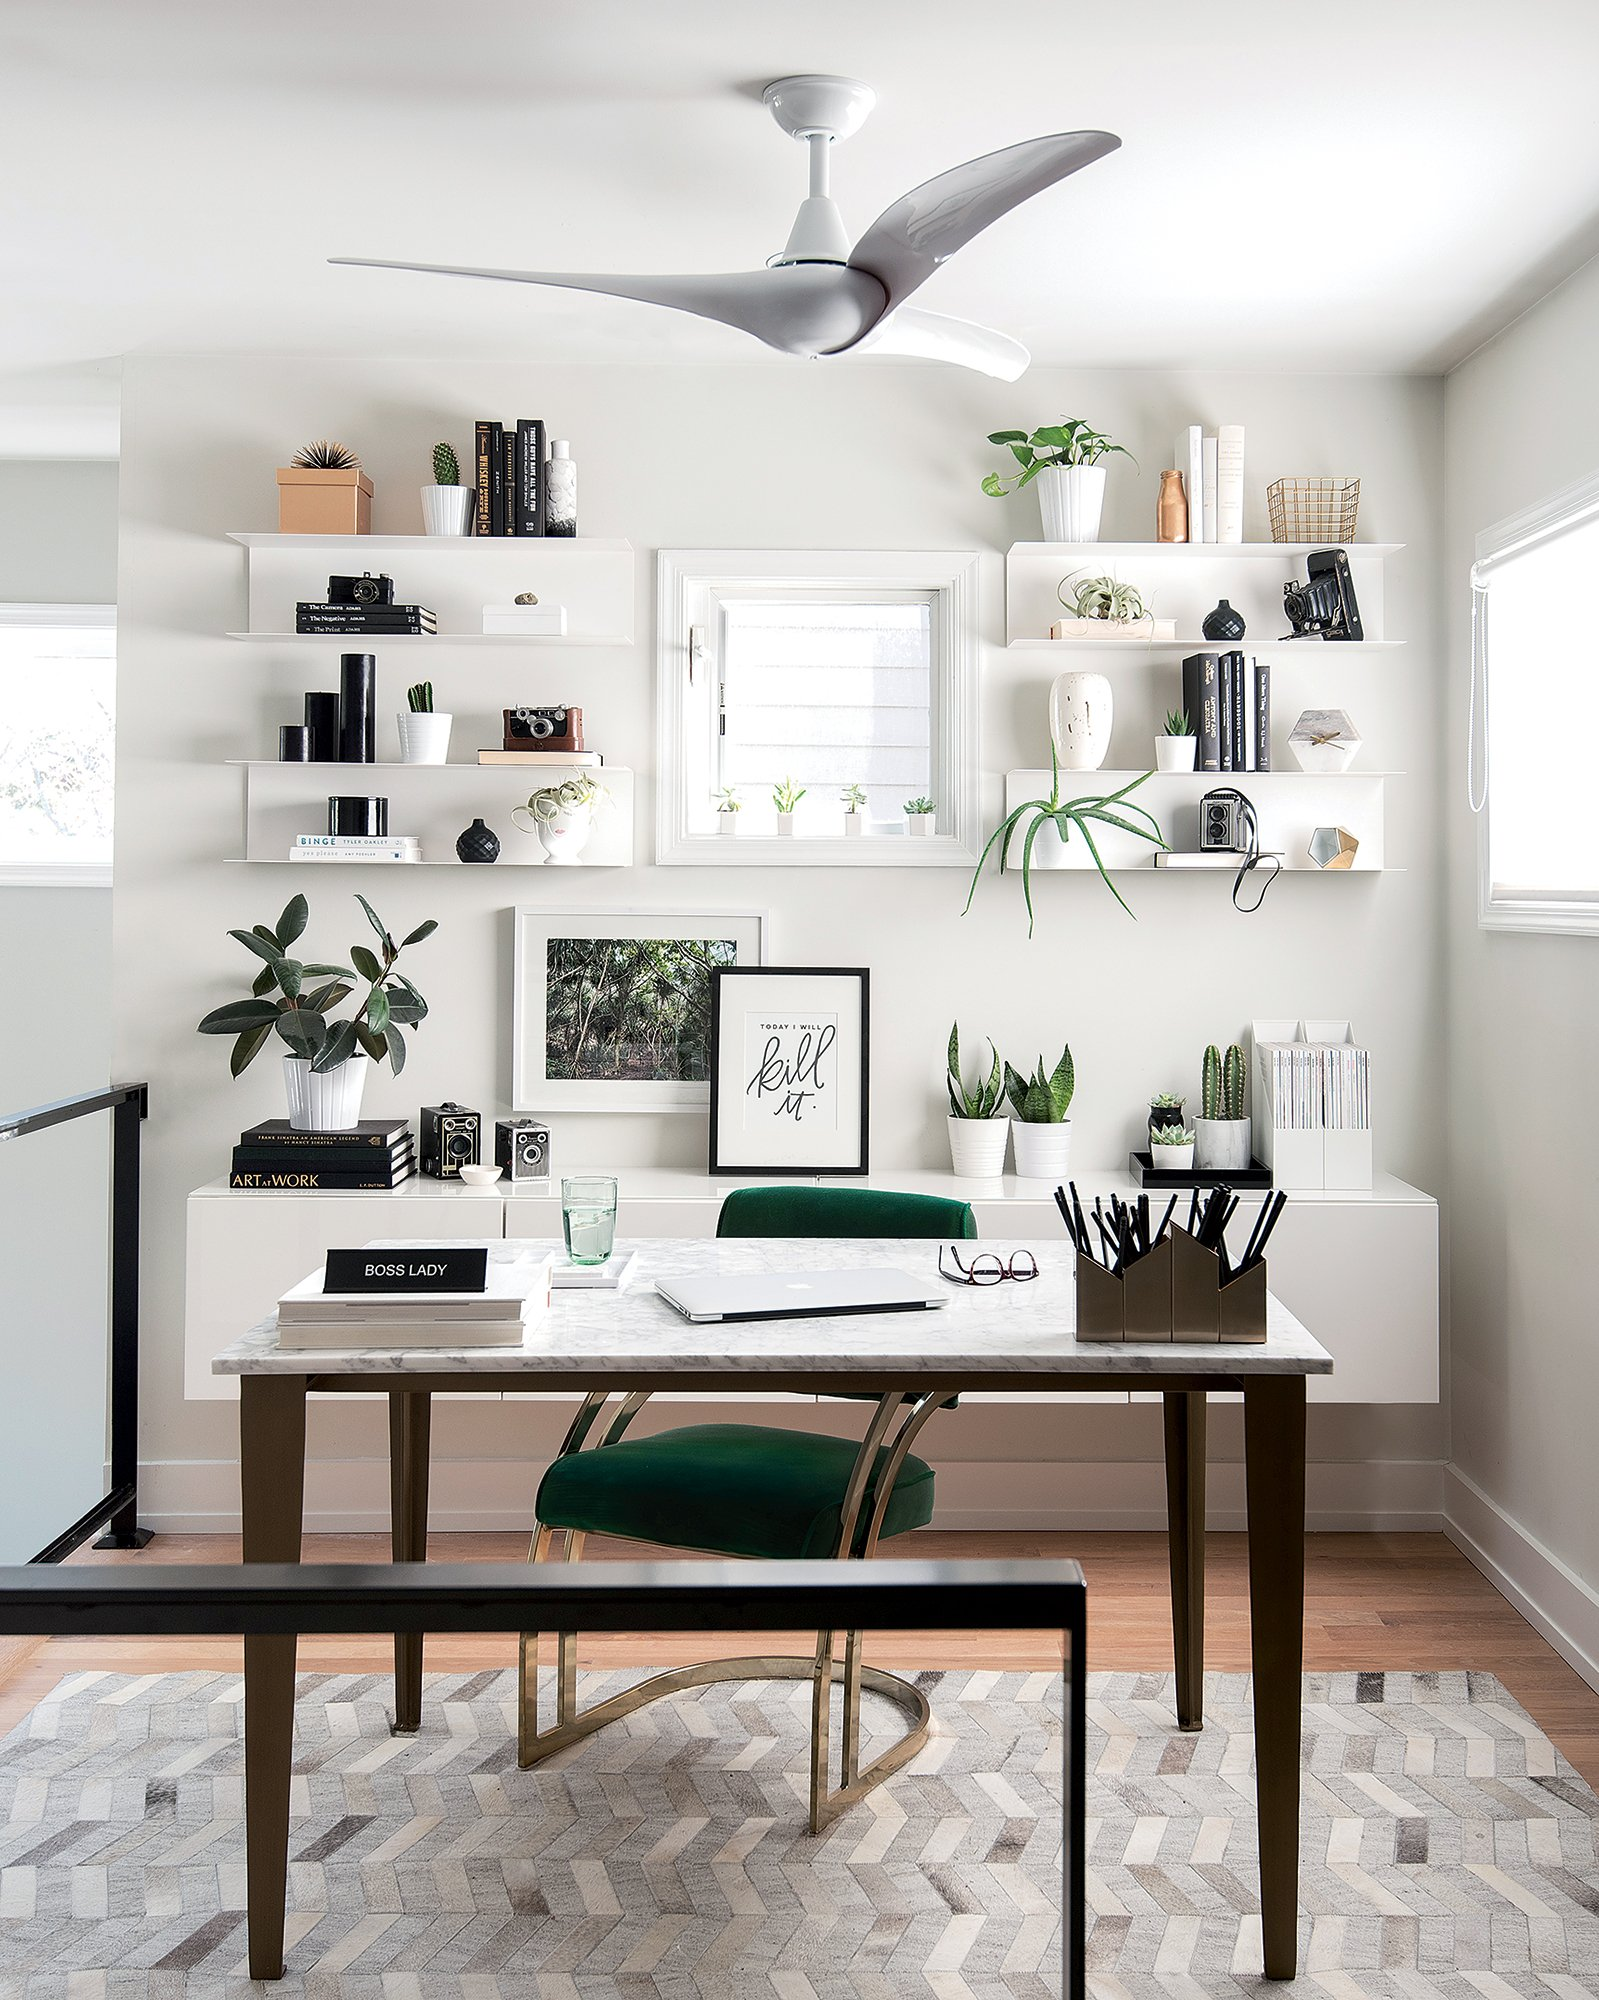 Laura Metzler's desk, top, is actually a dining table from CB2. She says it's one of the few items she was willing to pay full price for, because she often works from home.